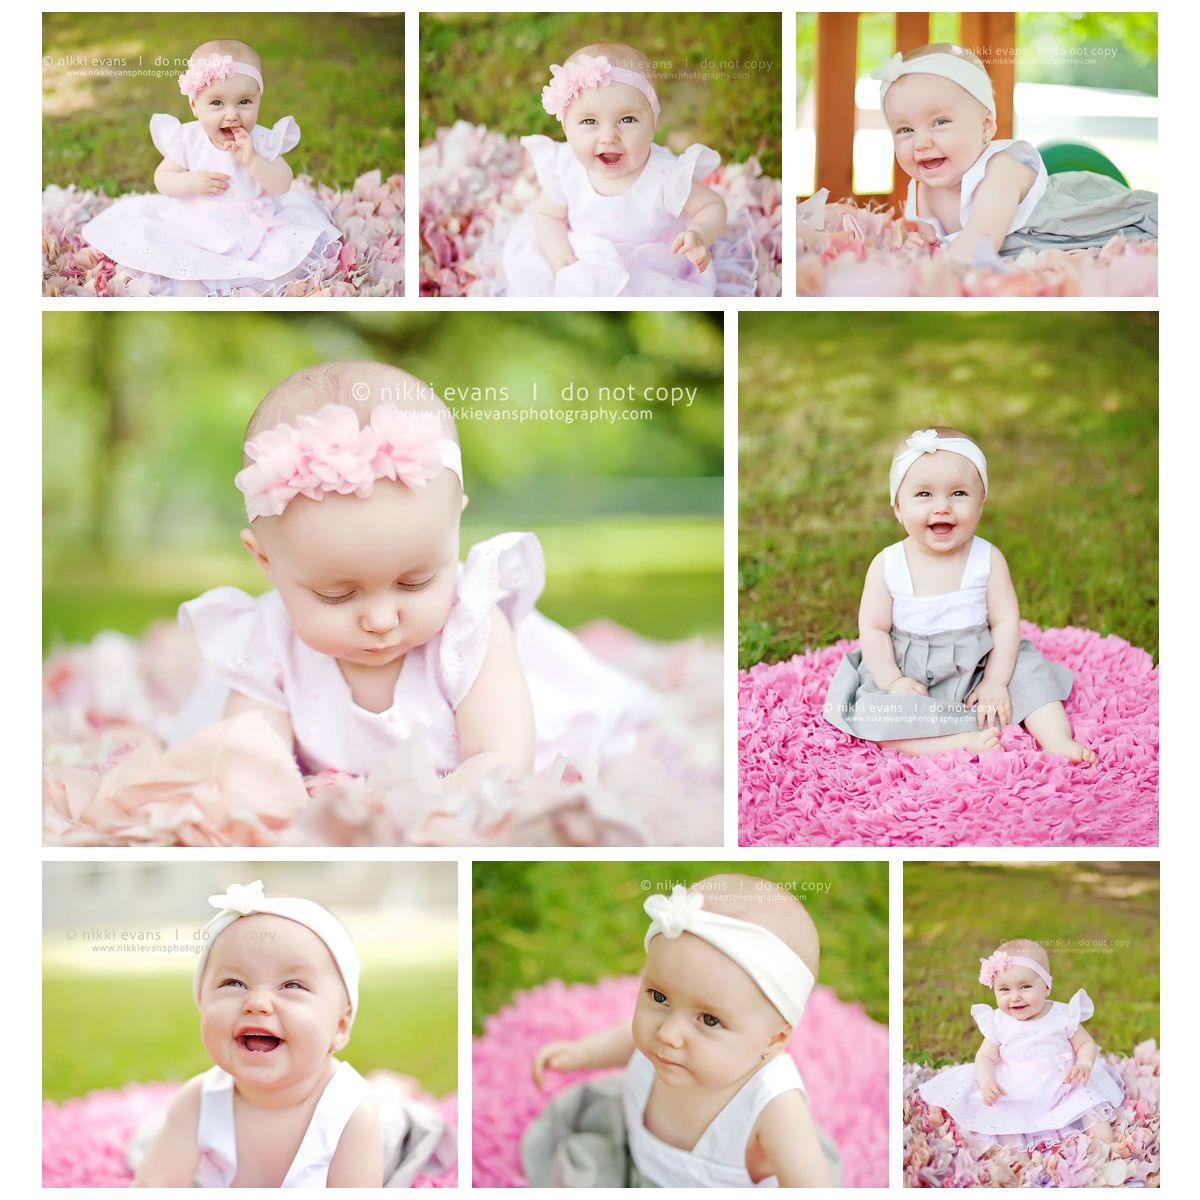 8 month old session with a beautiful baby girl